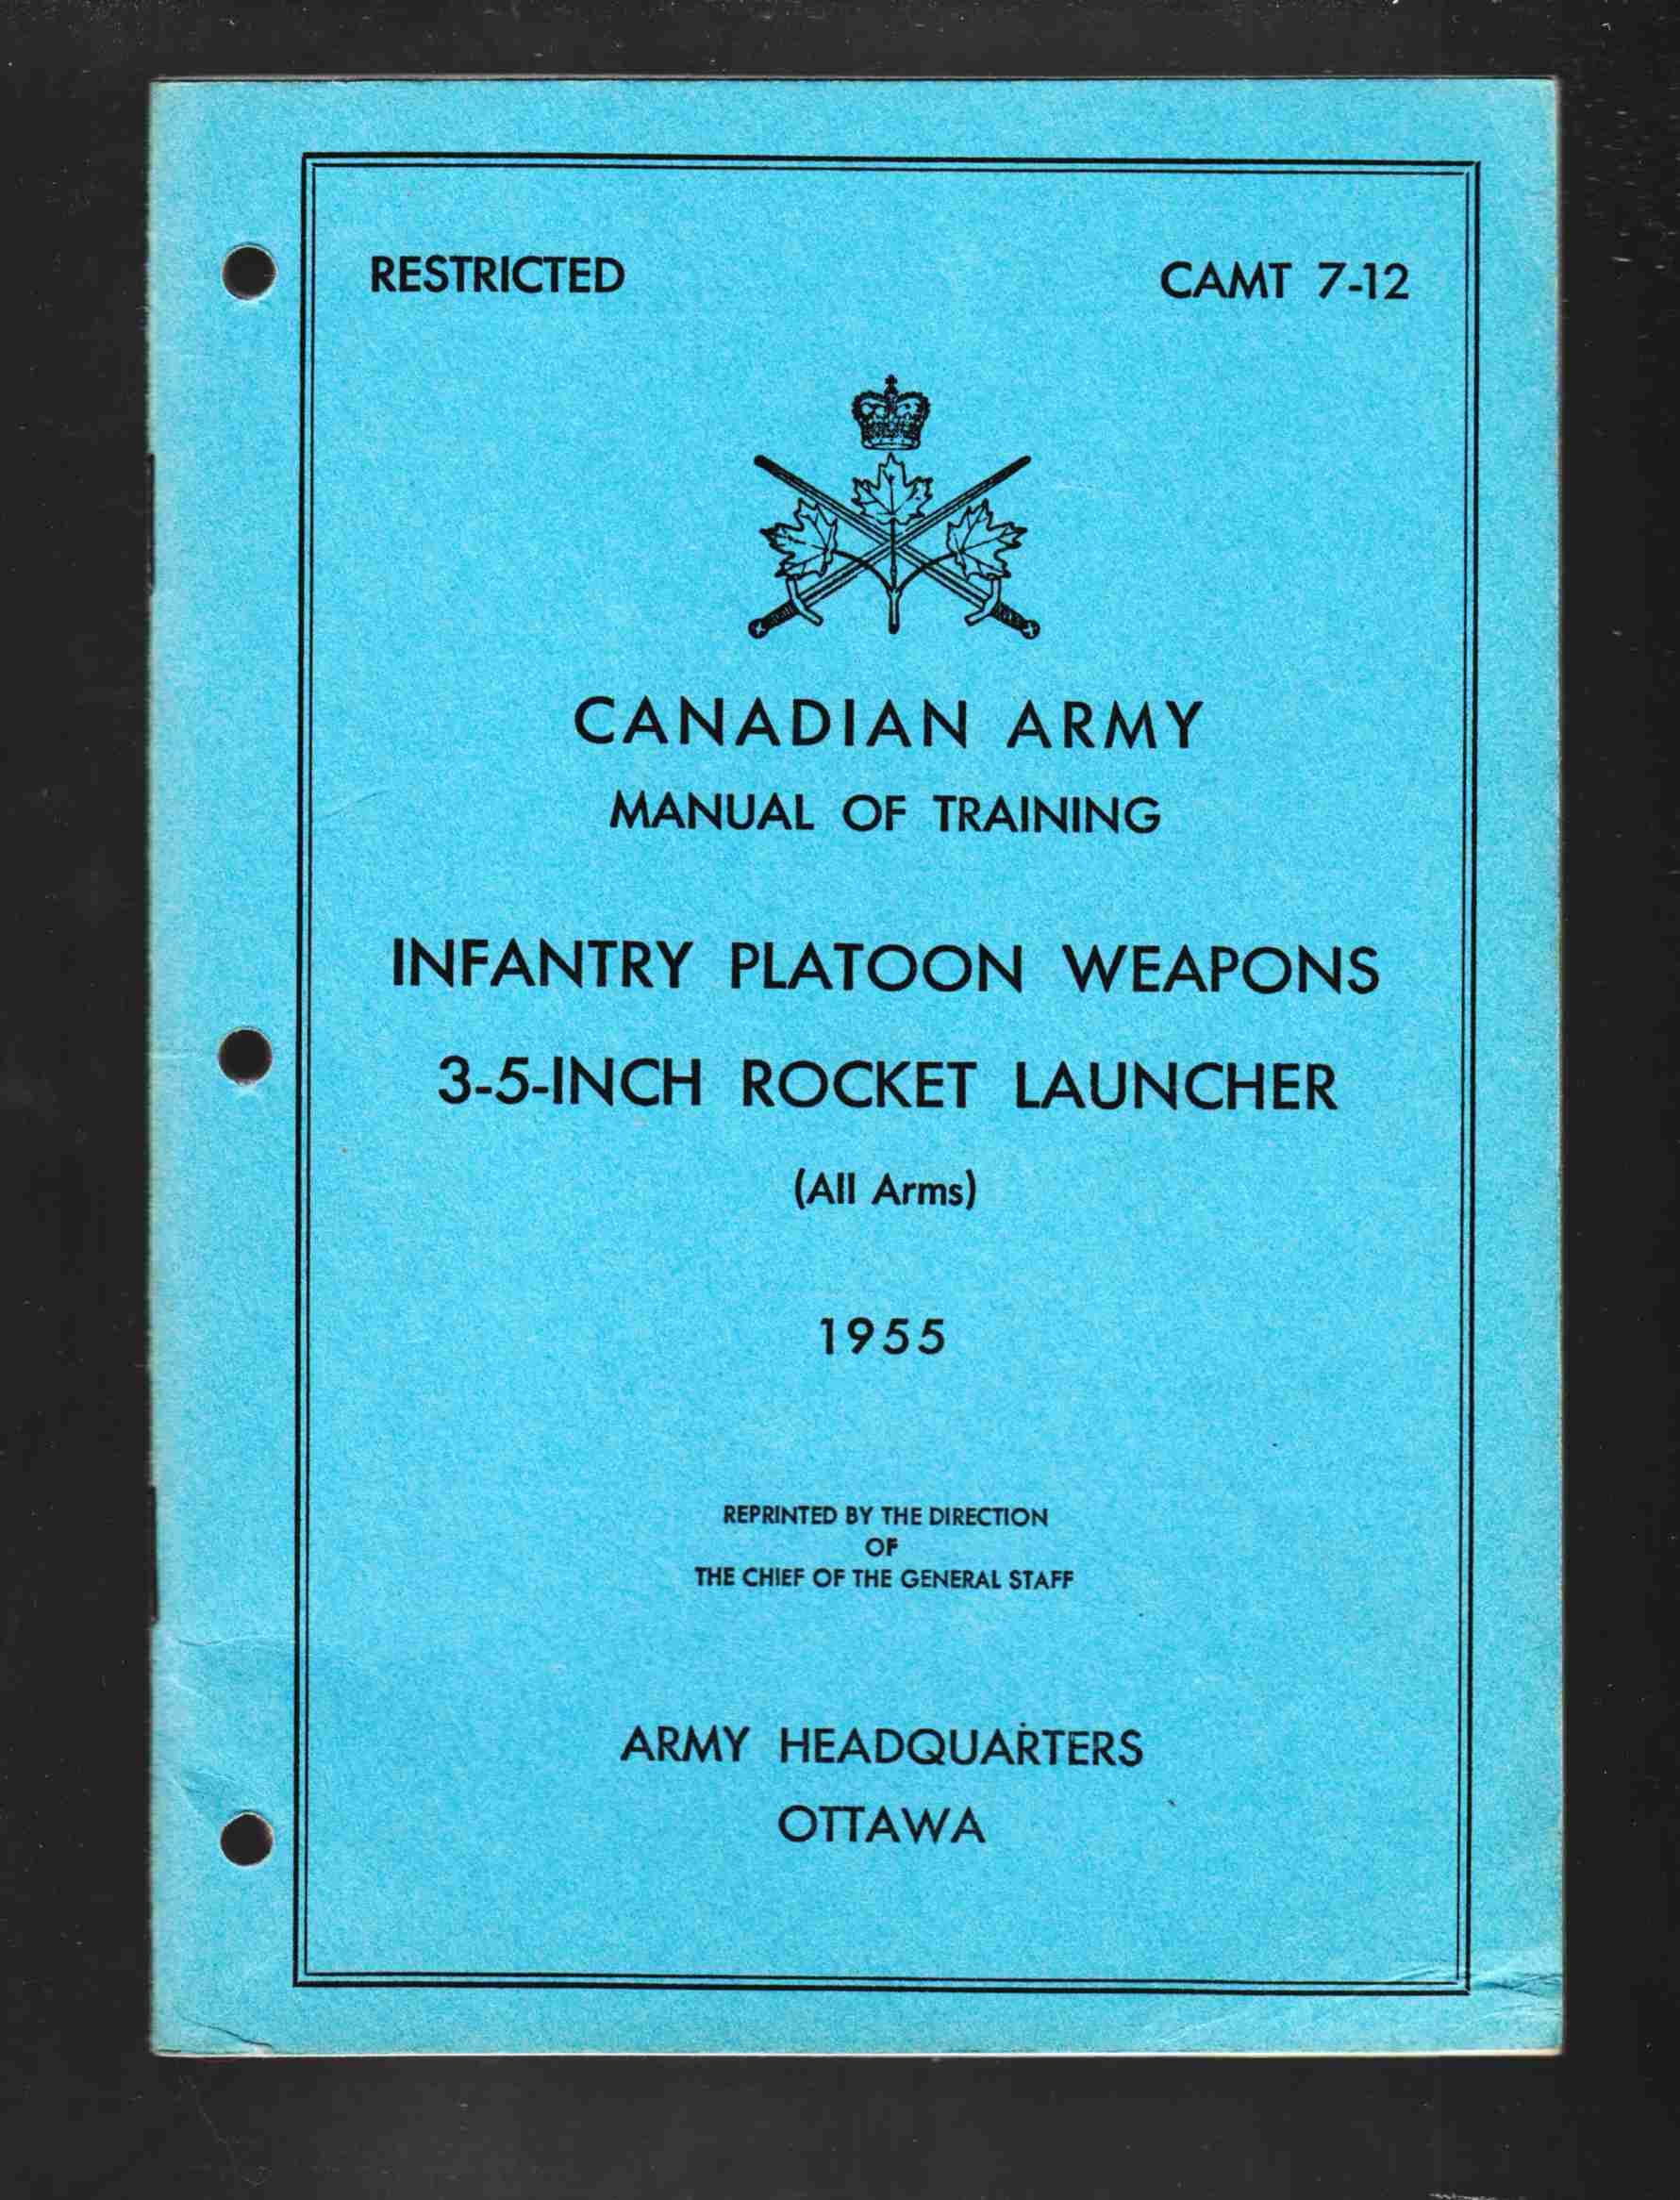 Image for Canadian Army Manual of Training Infantry Platoon Weapons 3.5-Inch Rocket Launcher (All Arms) 1955 CAMT 7-12